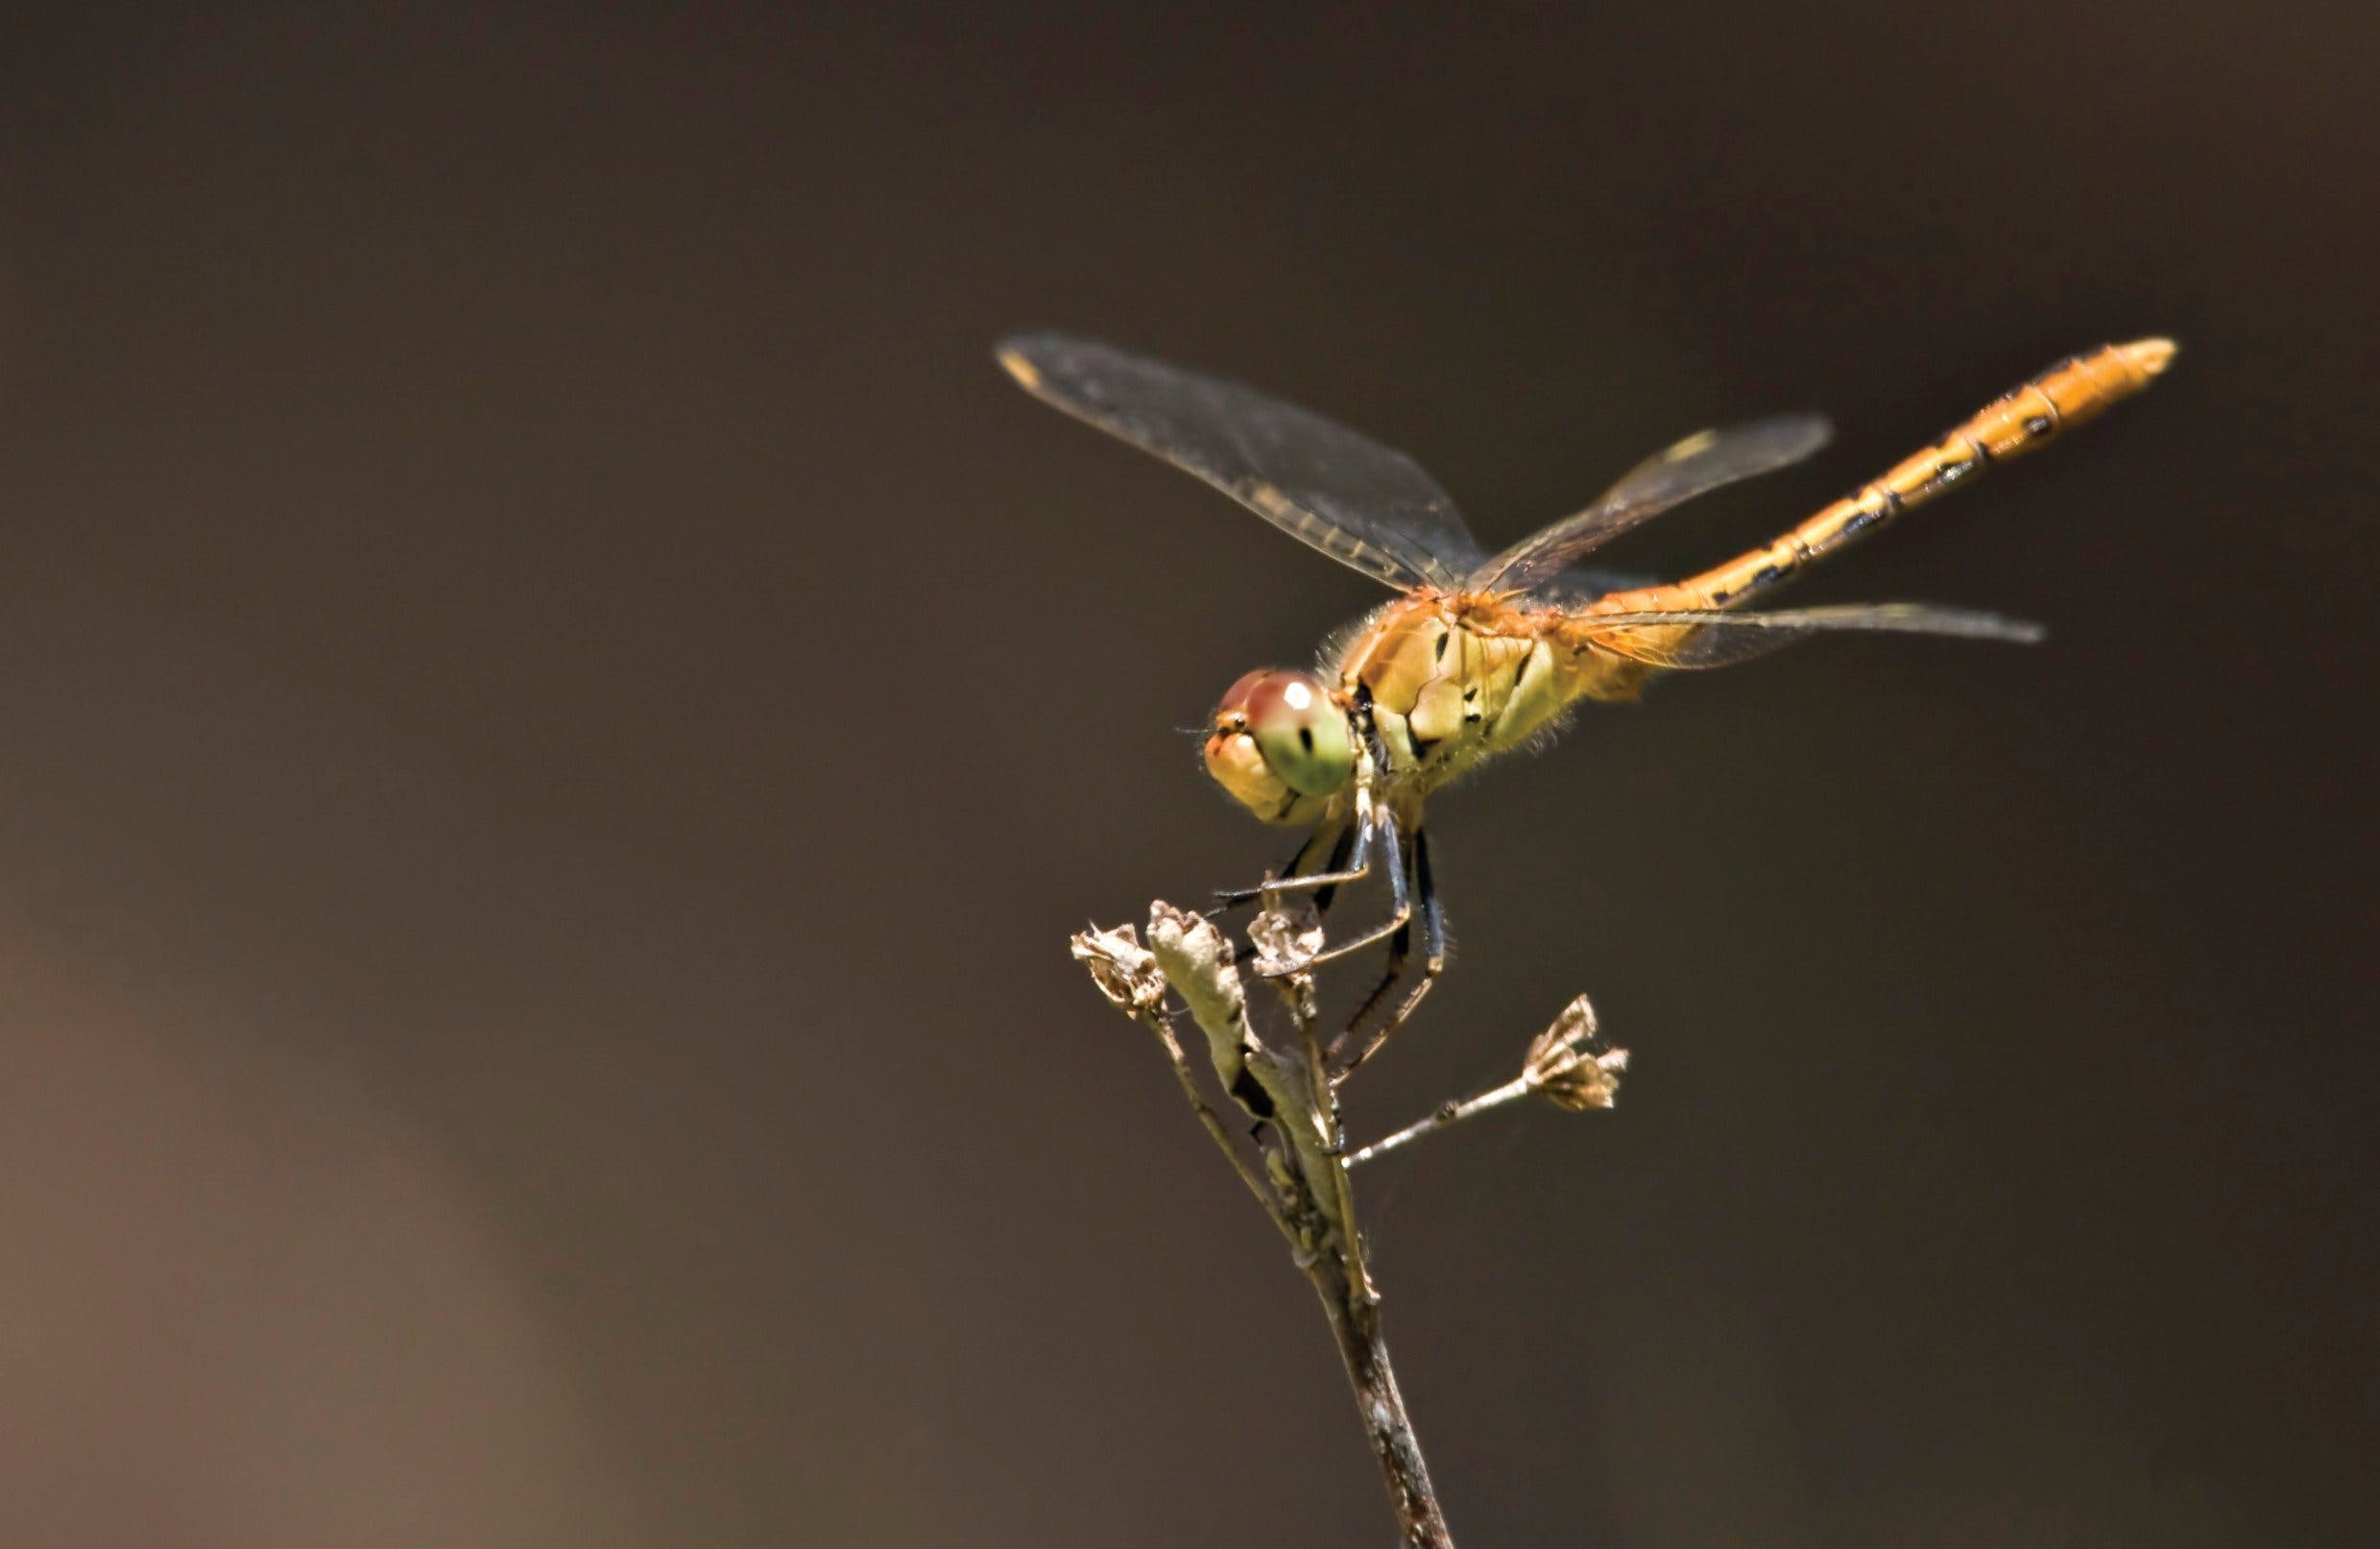 Dragonfly Discovery - New South Wales Tourism